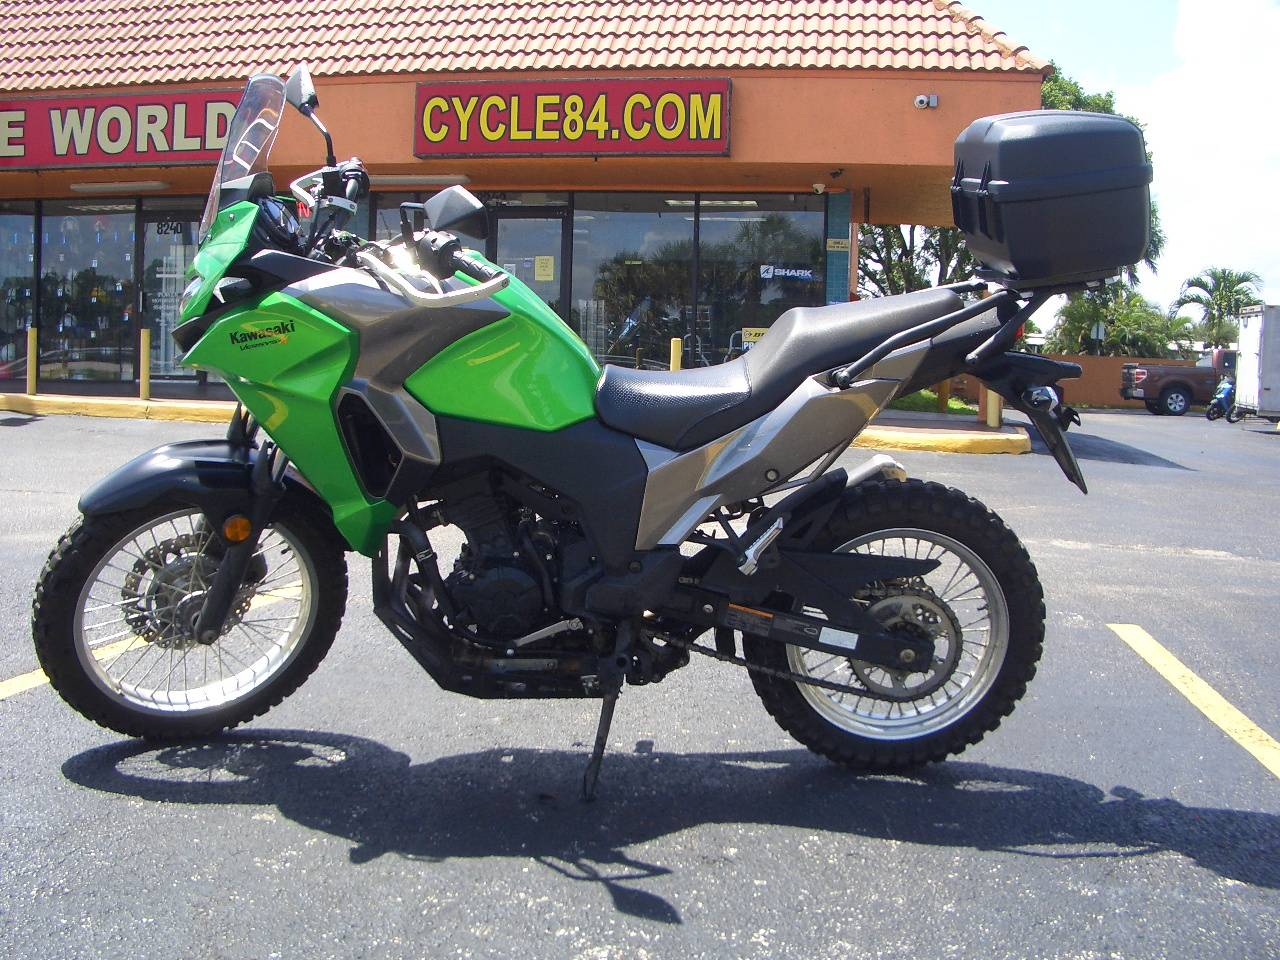 2017 Kawasaki Versys-X 300 in Fort Lauderdale, Florida - Photo 1